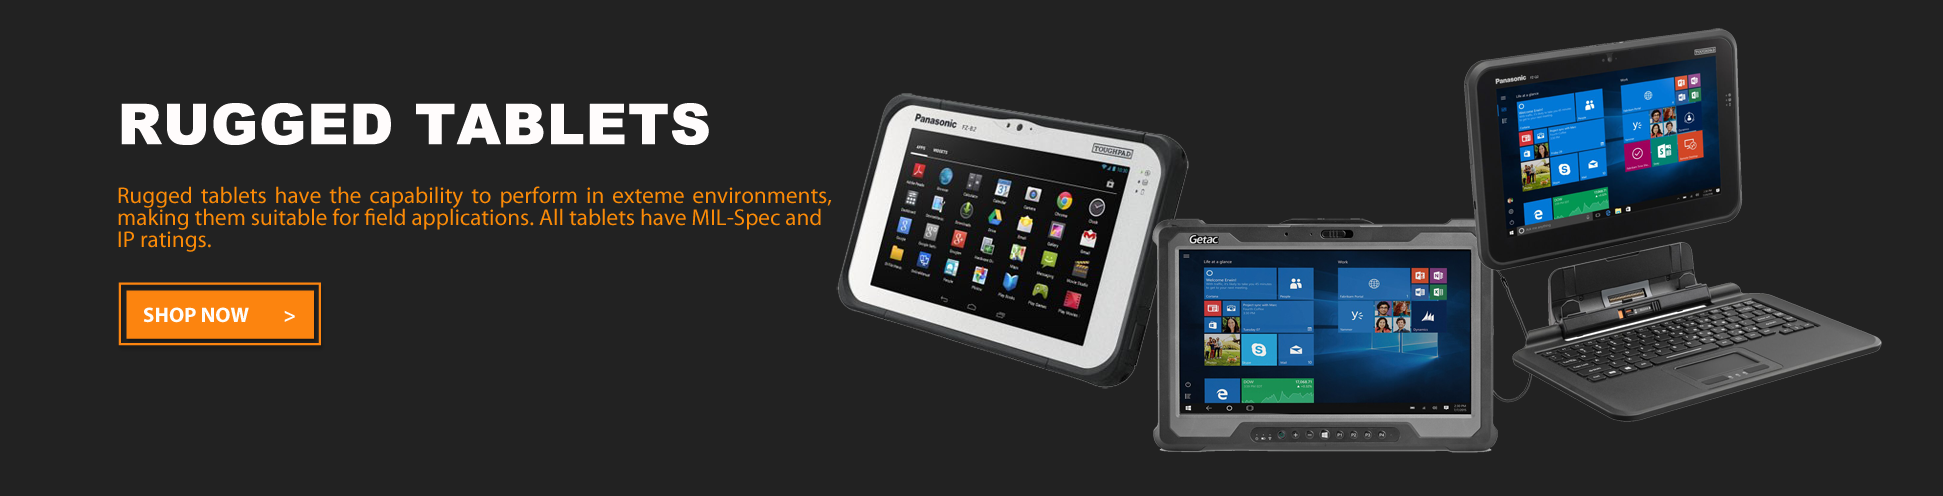 Rugged Tablets | Go-Rugged